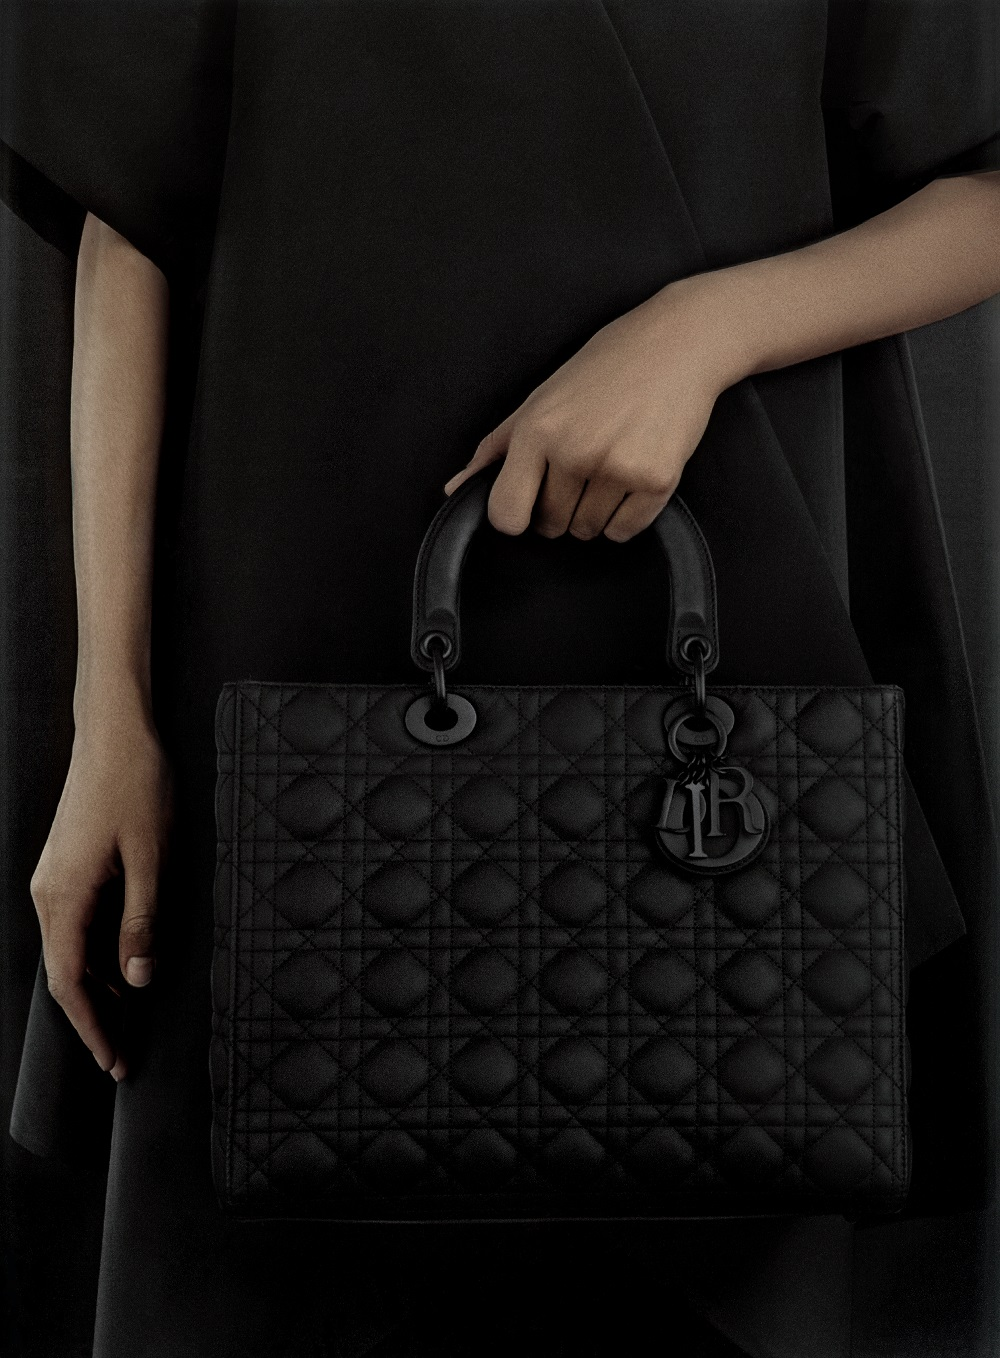 Dior presents the Black Ultra-Matte Bags